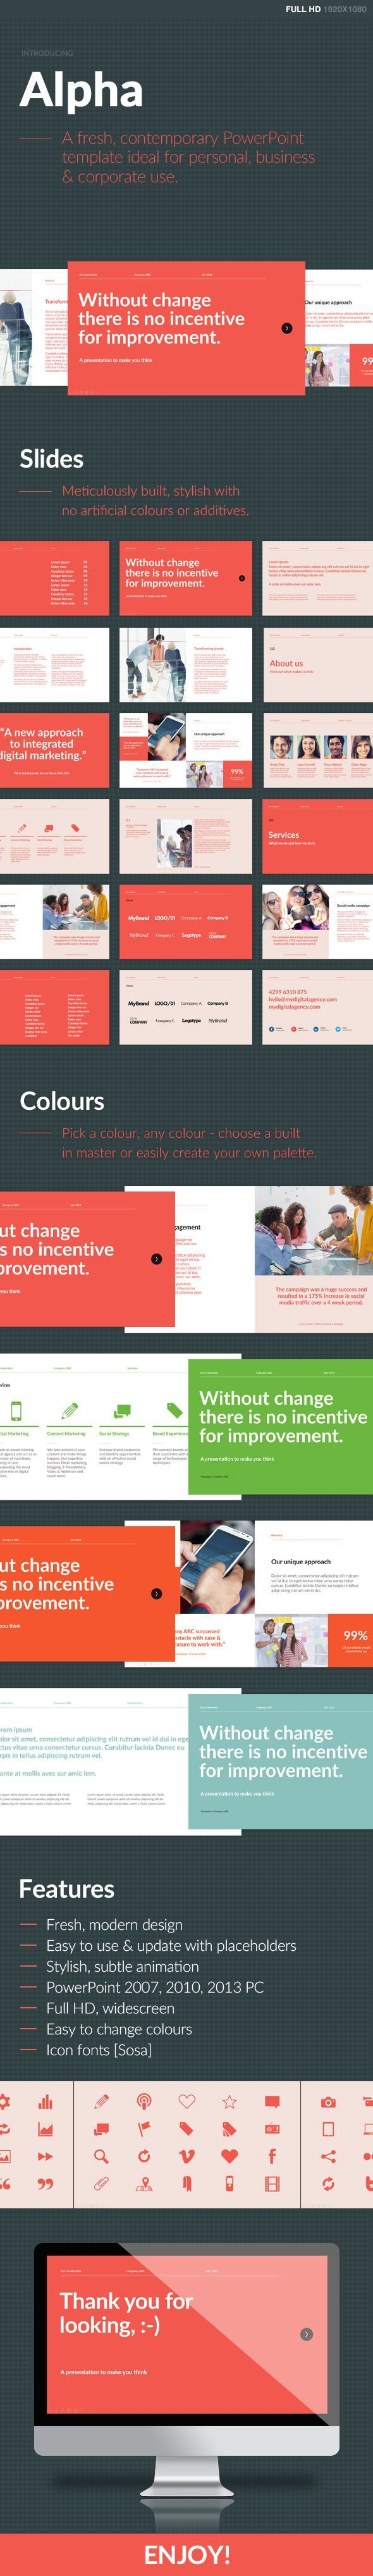 25 Best Powerpoint Template Images By Christian Arreola On